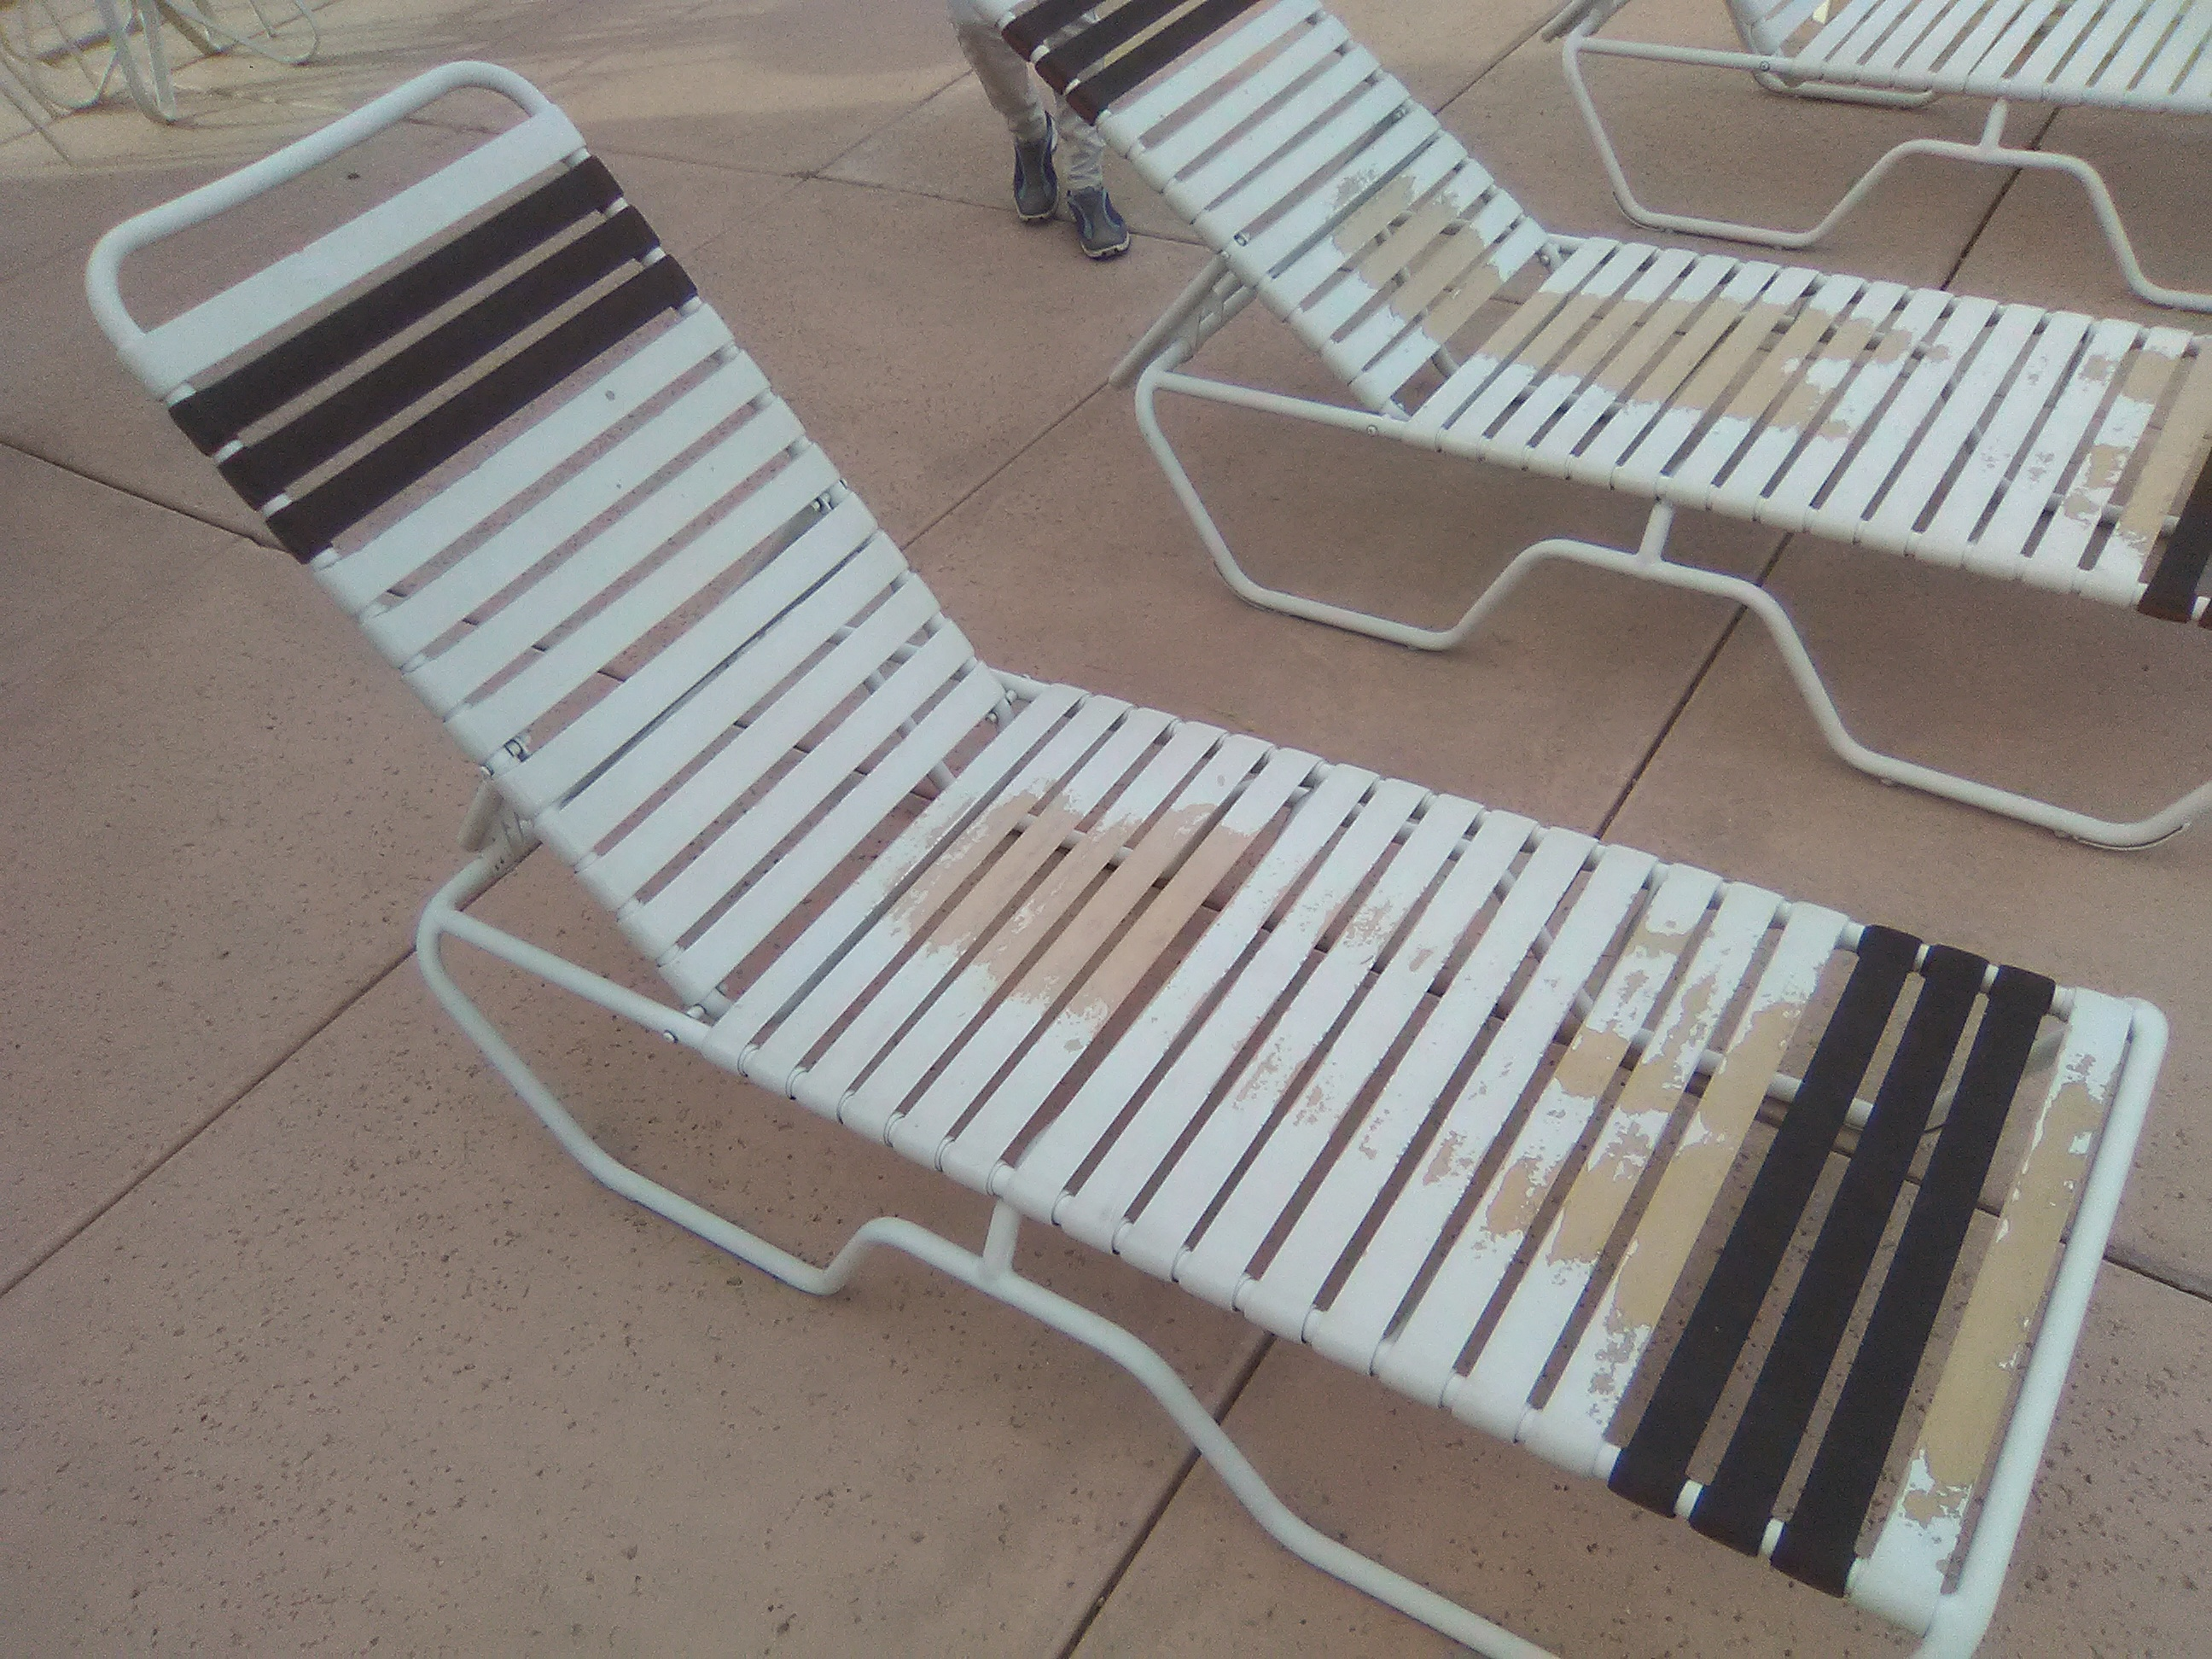 Vinyl Strap Replacement Service | Chaise Lounges - BEFORE